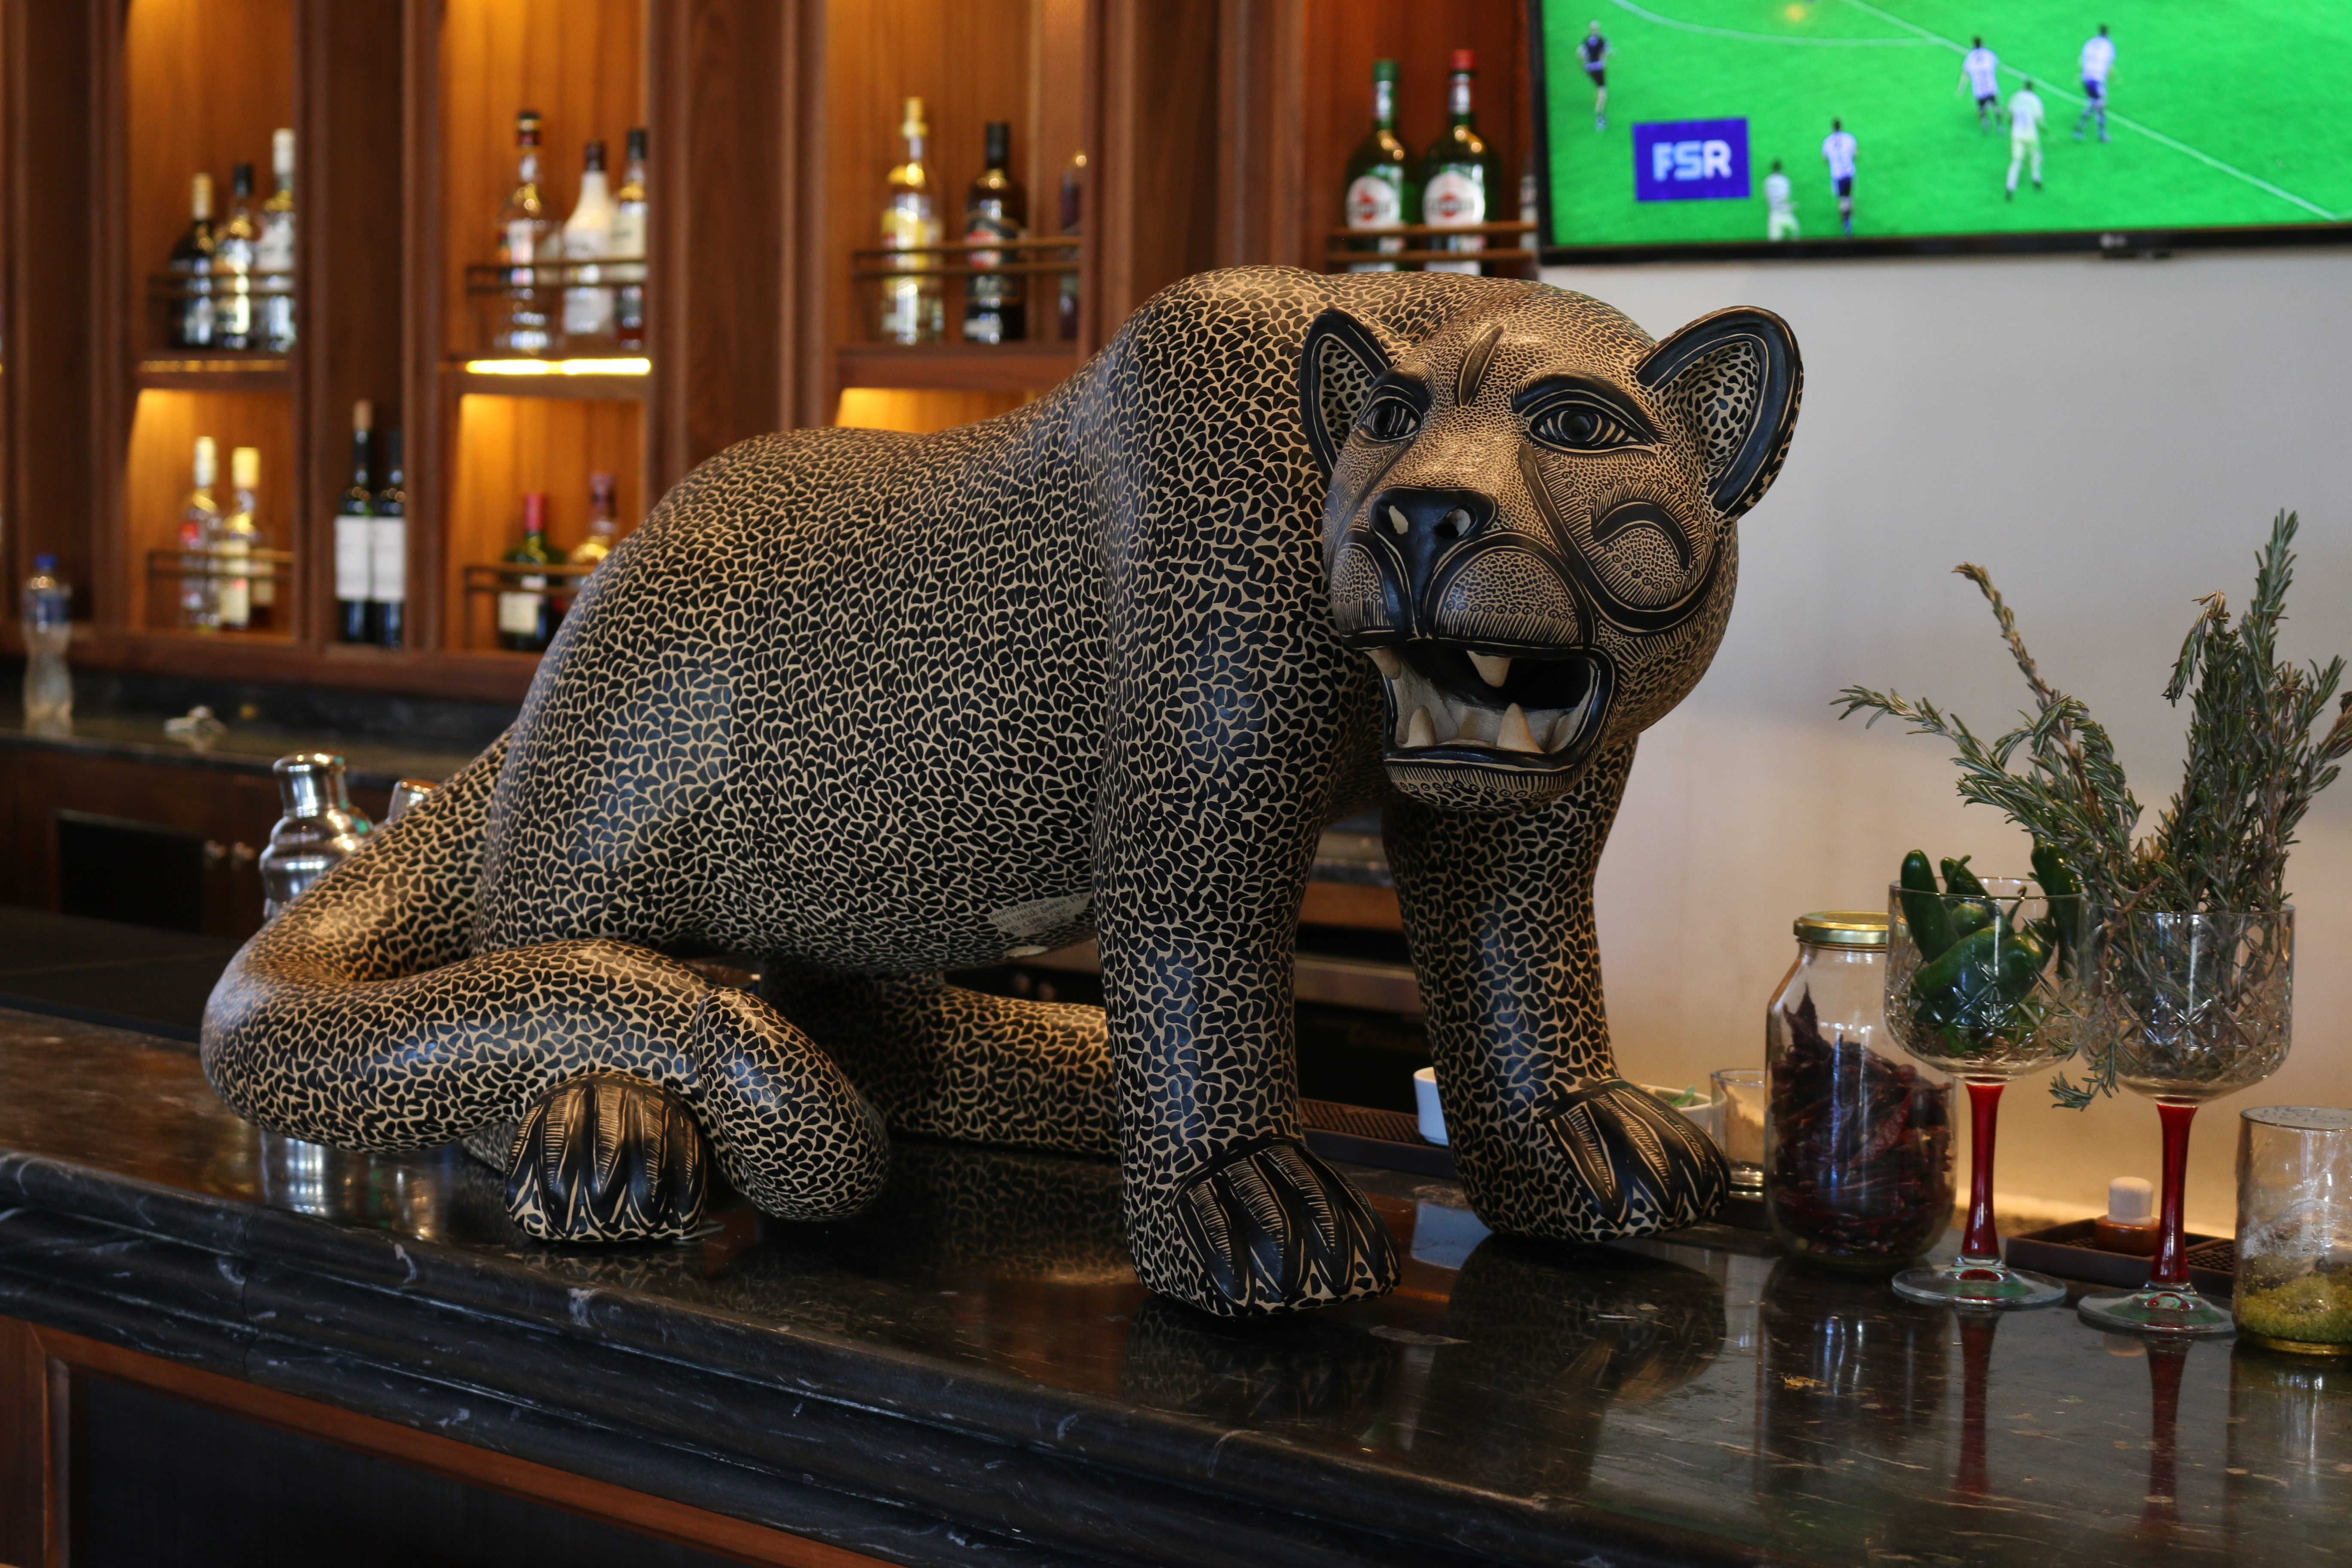 Balam means jaguar in Mayan, hence this gorgeous sculpture of the animal that rests on the bar counter.